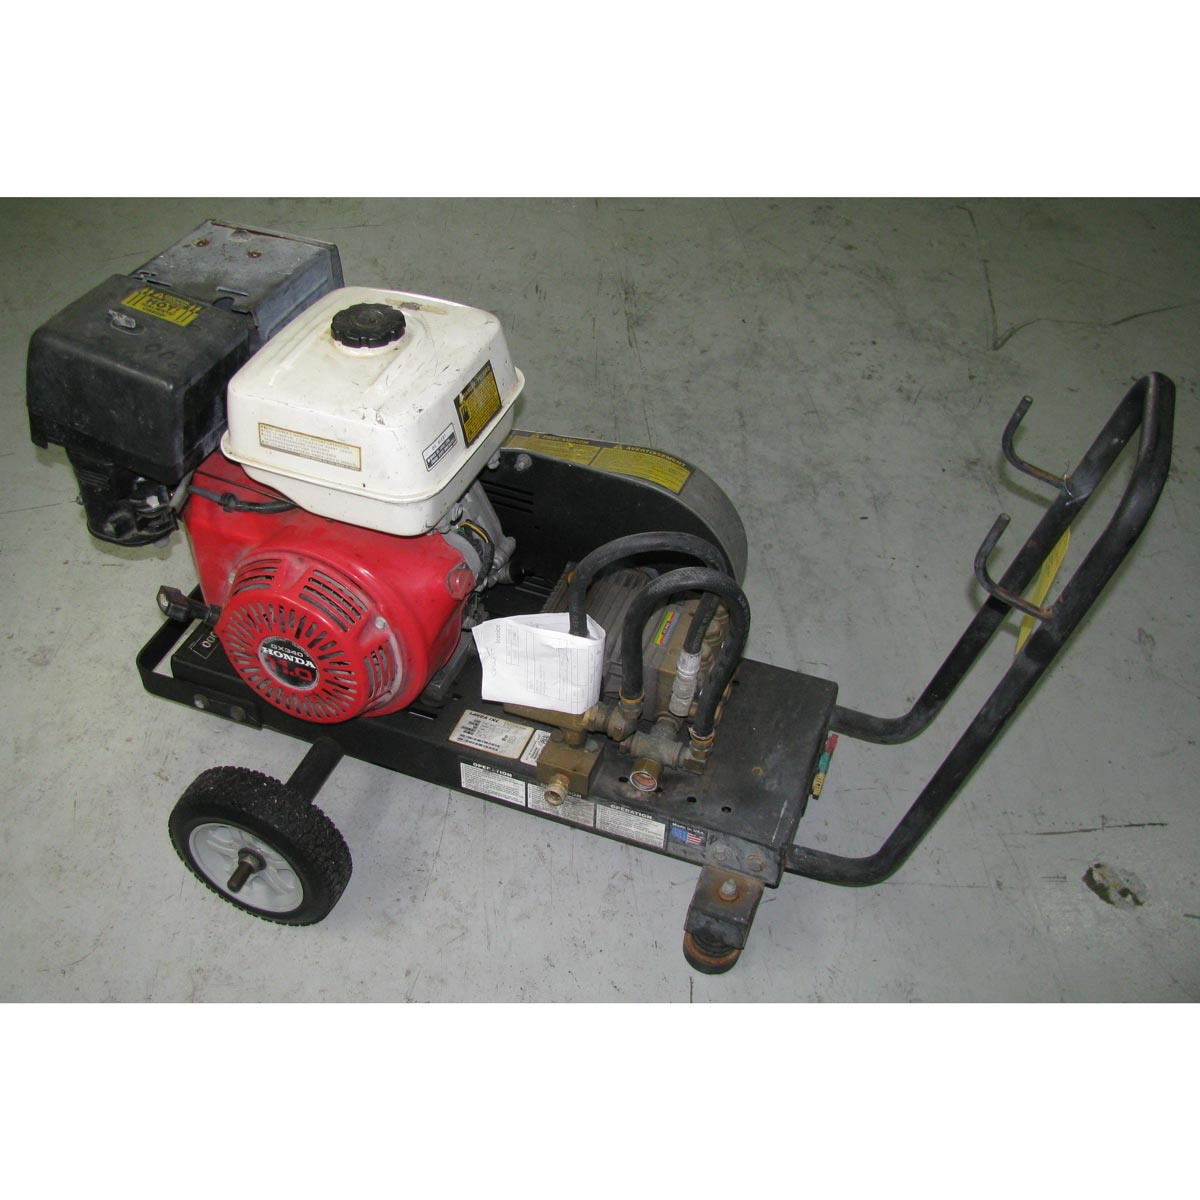 Used Karcher Landa PGS4-30321 Cold Pressure Washer Honda 11 Hp 3000 psi 3.5 Gpm